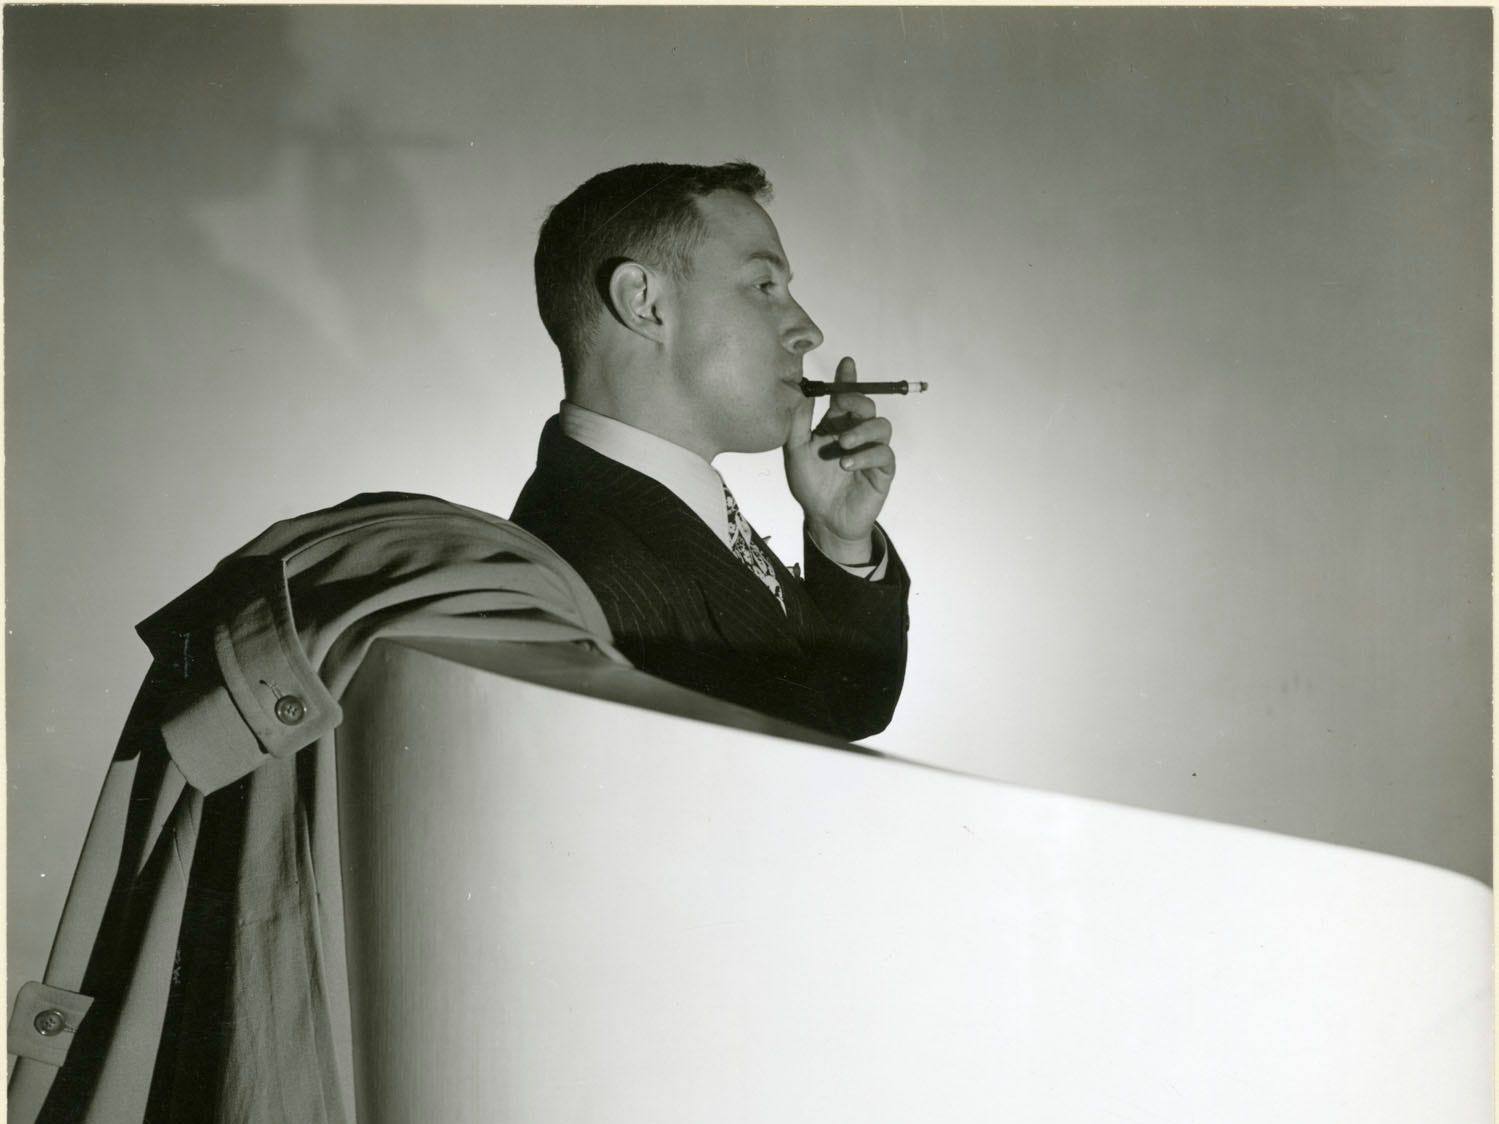 "George Platt Lynes (American, 1907–1955), Tennessee Williams, 1944, gelatin silver print, 7-3/8 × 9 in.  ""Sensual / Sexual / Social:  The Photography of George Platt Lynes"" exhibit will be at Newfields, Sept. 30, 2018 through Feb. 24, 2019.  Photo is from the Collections of the Kinsey Institute, Indiana University.  © Estate of George Platt Lynes."